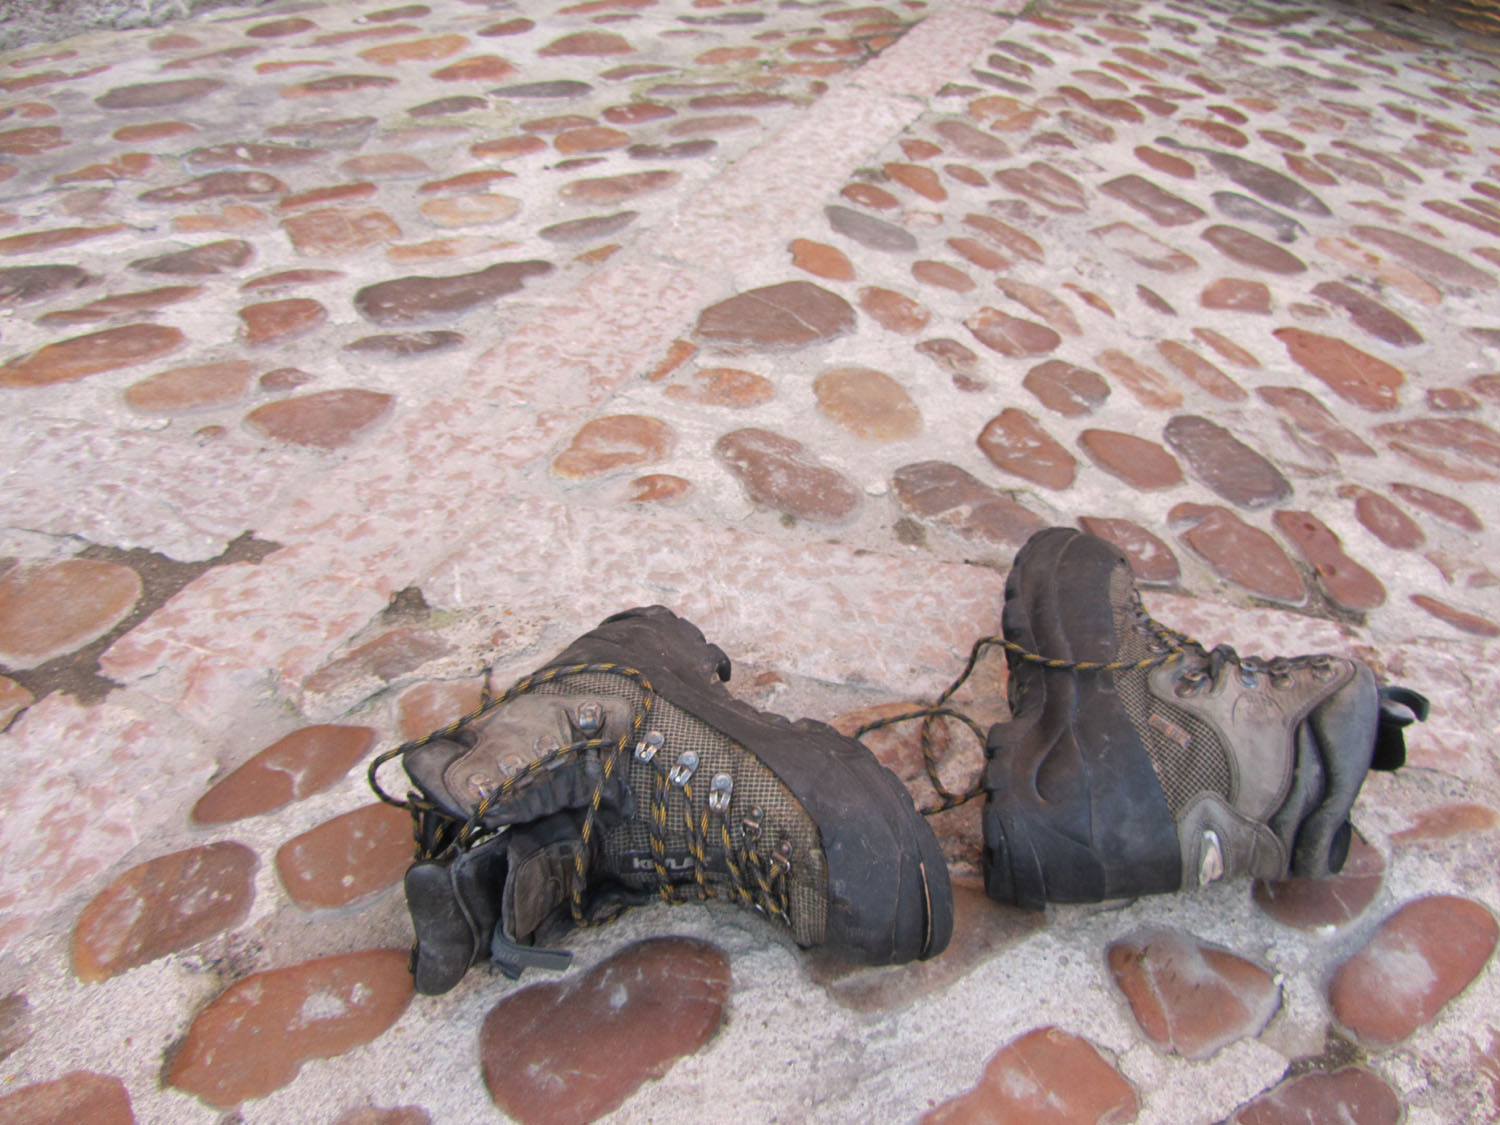 Camino-De-Santiago-Sights-And-Scenery-Boots